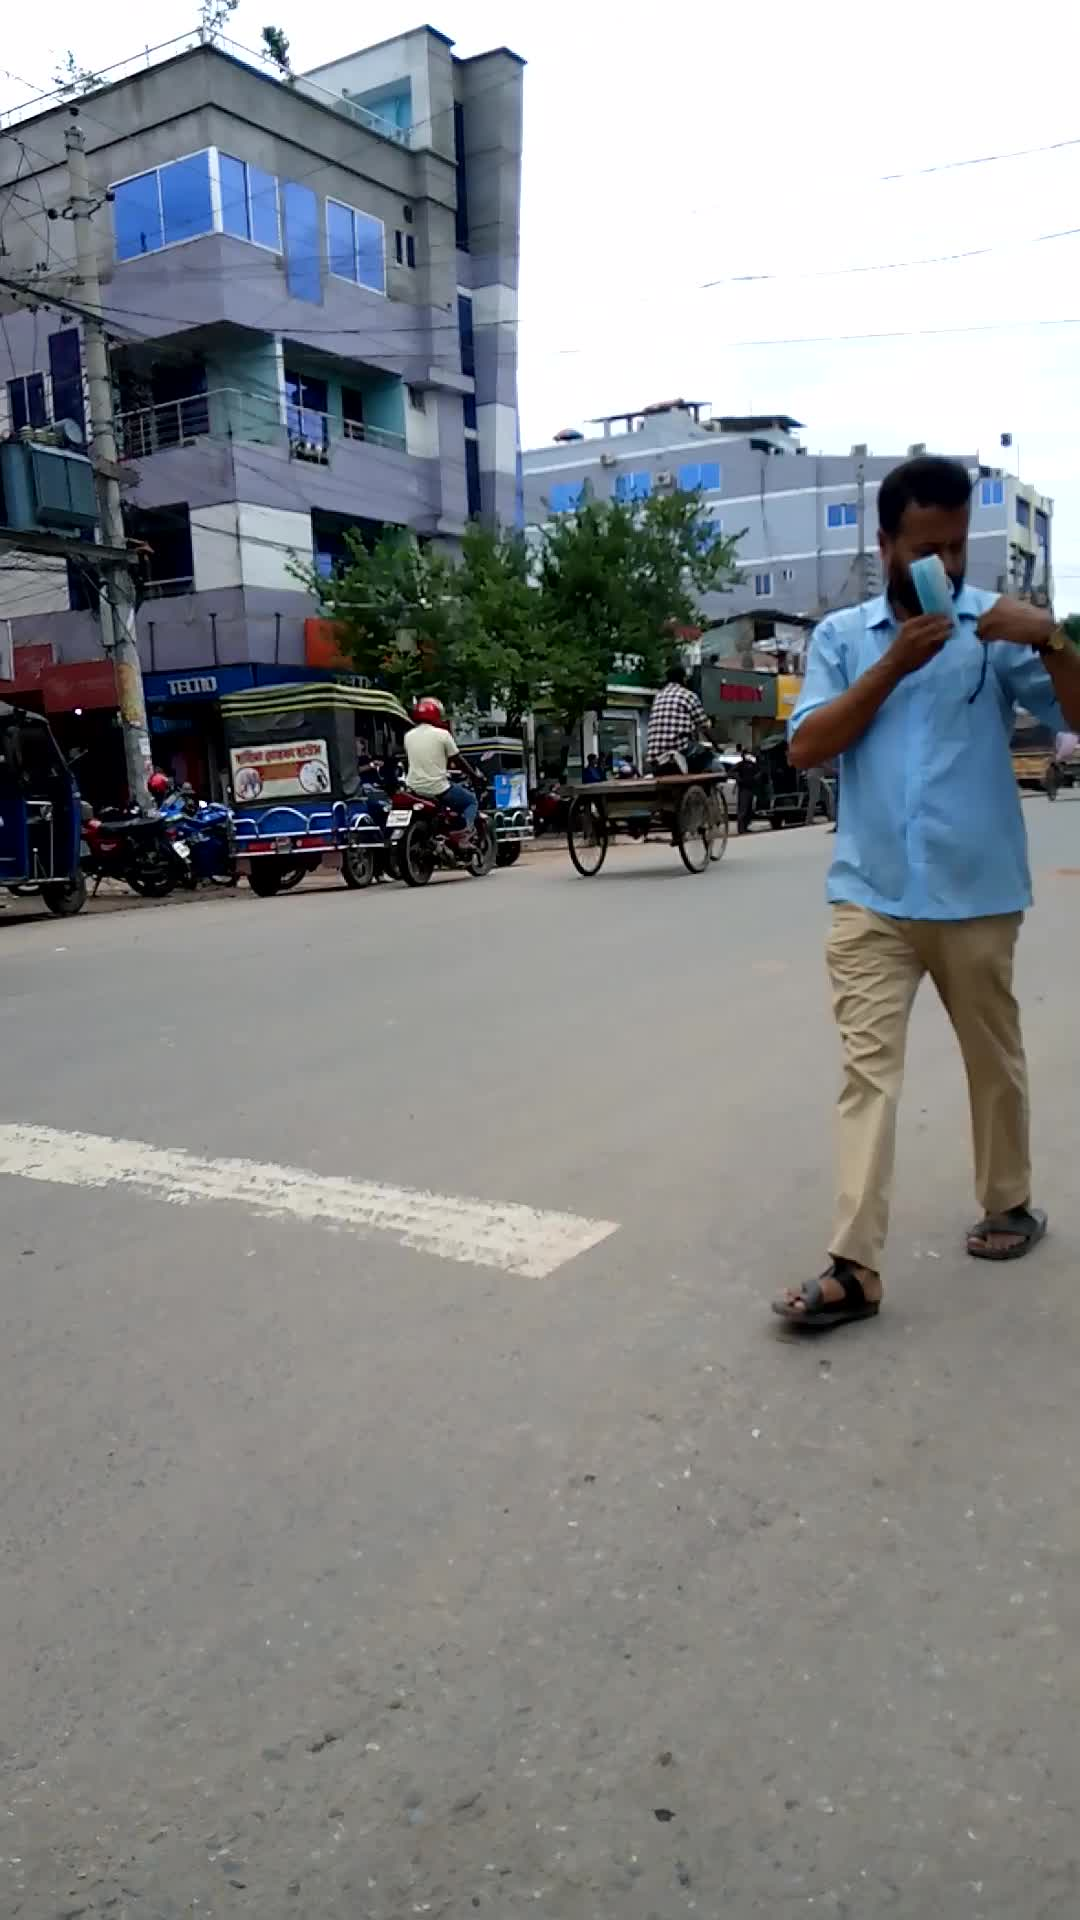 Satkhira is one of the busiest roads in the city